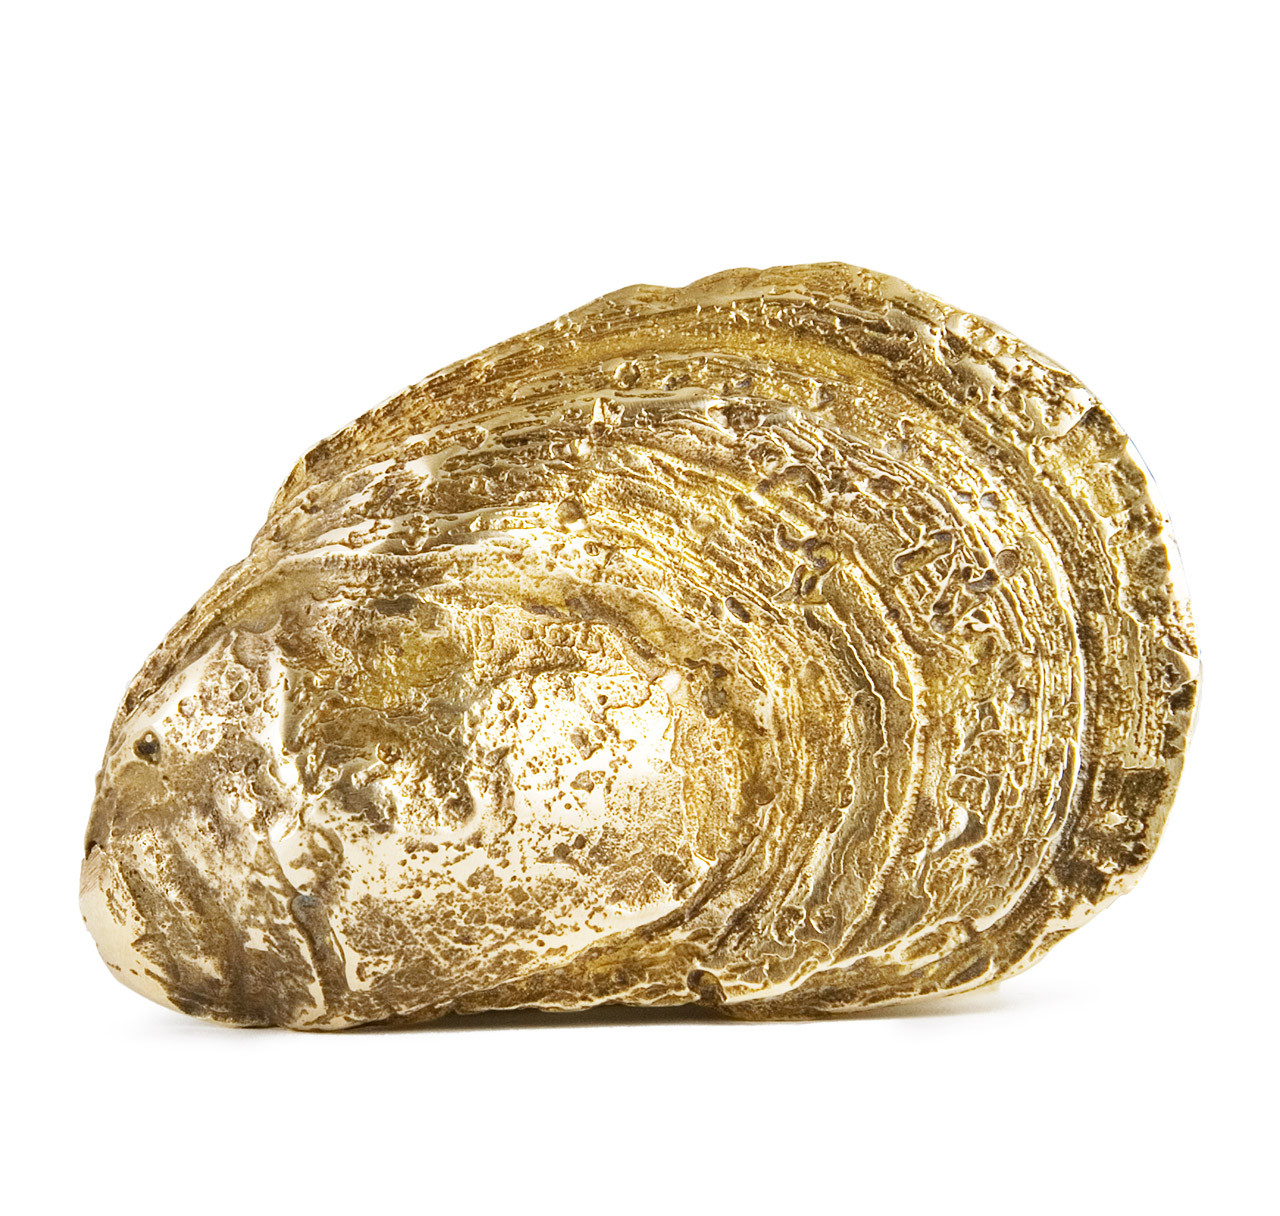 oyster shell Collocations: an oyster bar, cover in oyster sauce, [crack, pry] open an oyster shell, more discussões no fórum com a(s) palavra(s) oyster no título.